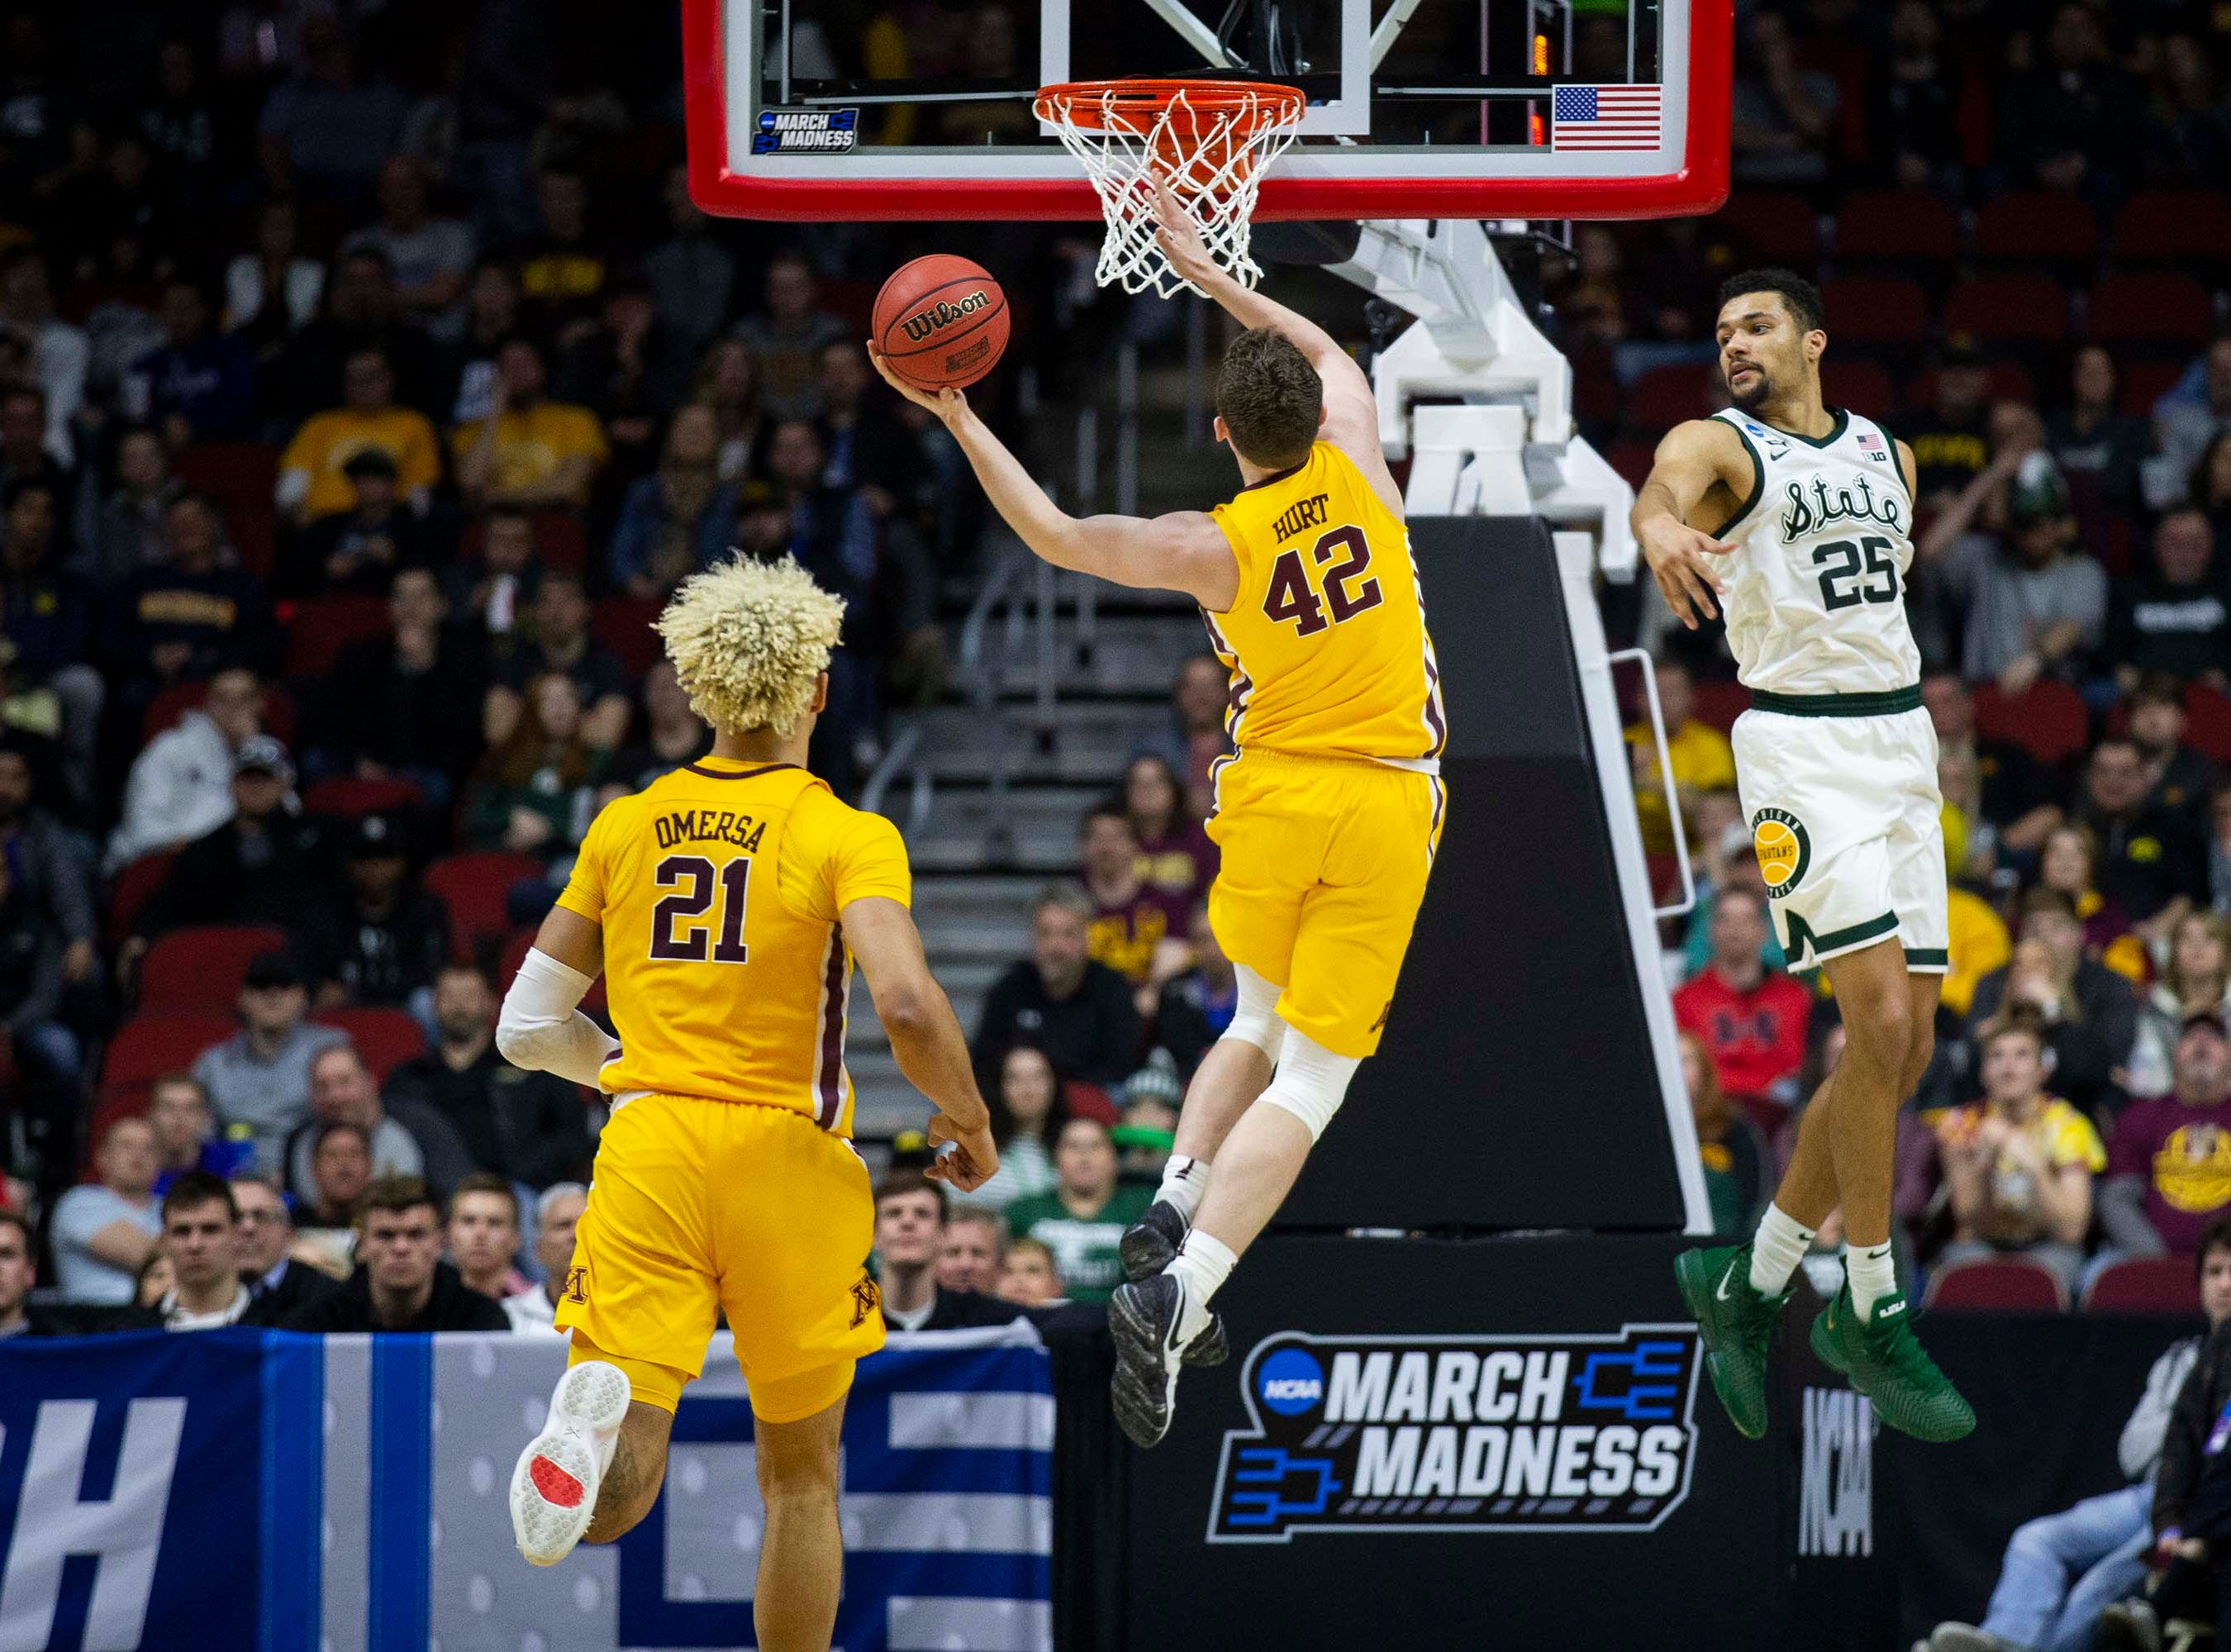 Minnesota's Michael Hurt makes a lay-up during the NCAA Tournament second-round match-up between Minnesota and Michigan State on Saturday, March 23, 2019, in Wells Fargo Arena in Des Moines, Iowa.